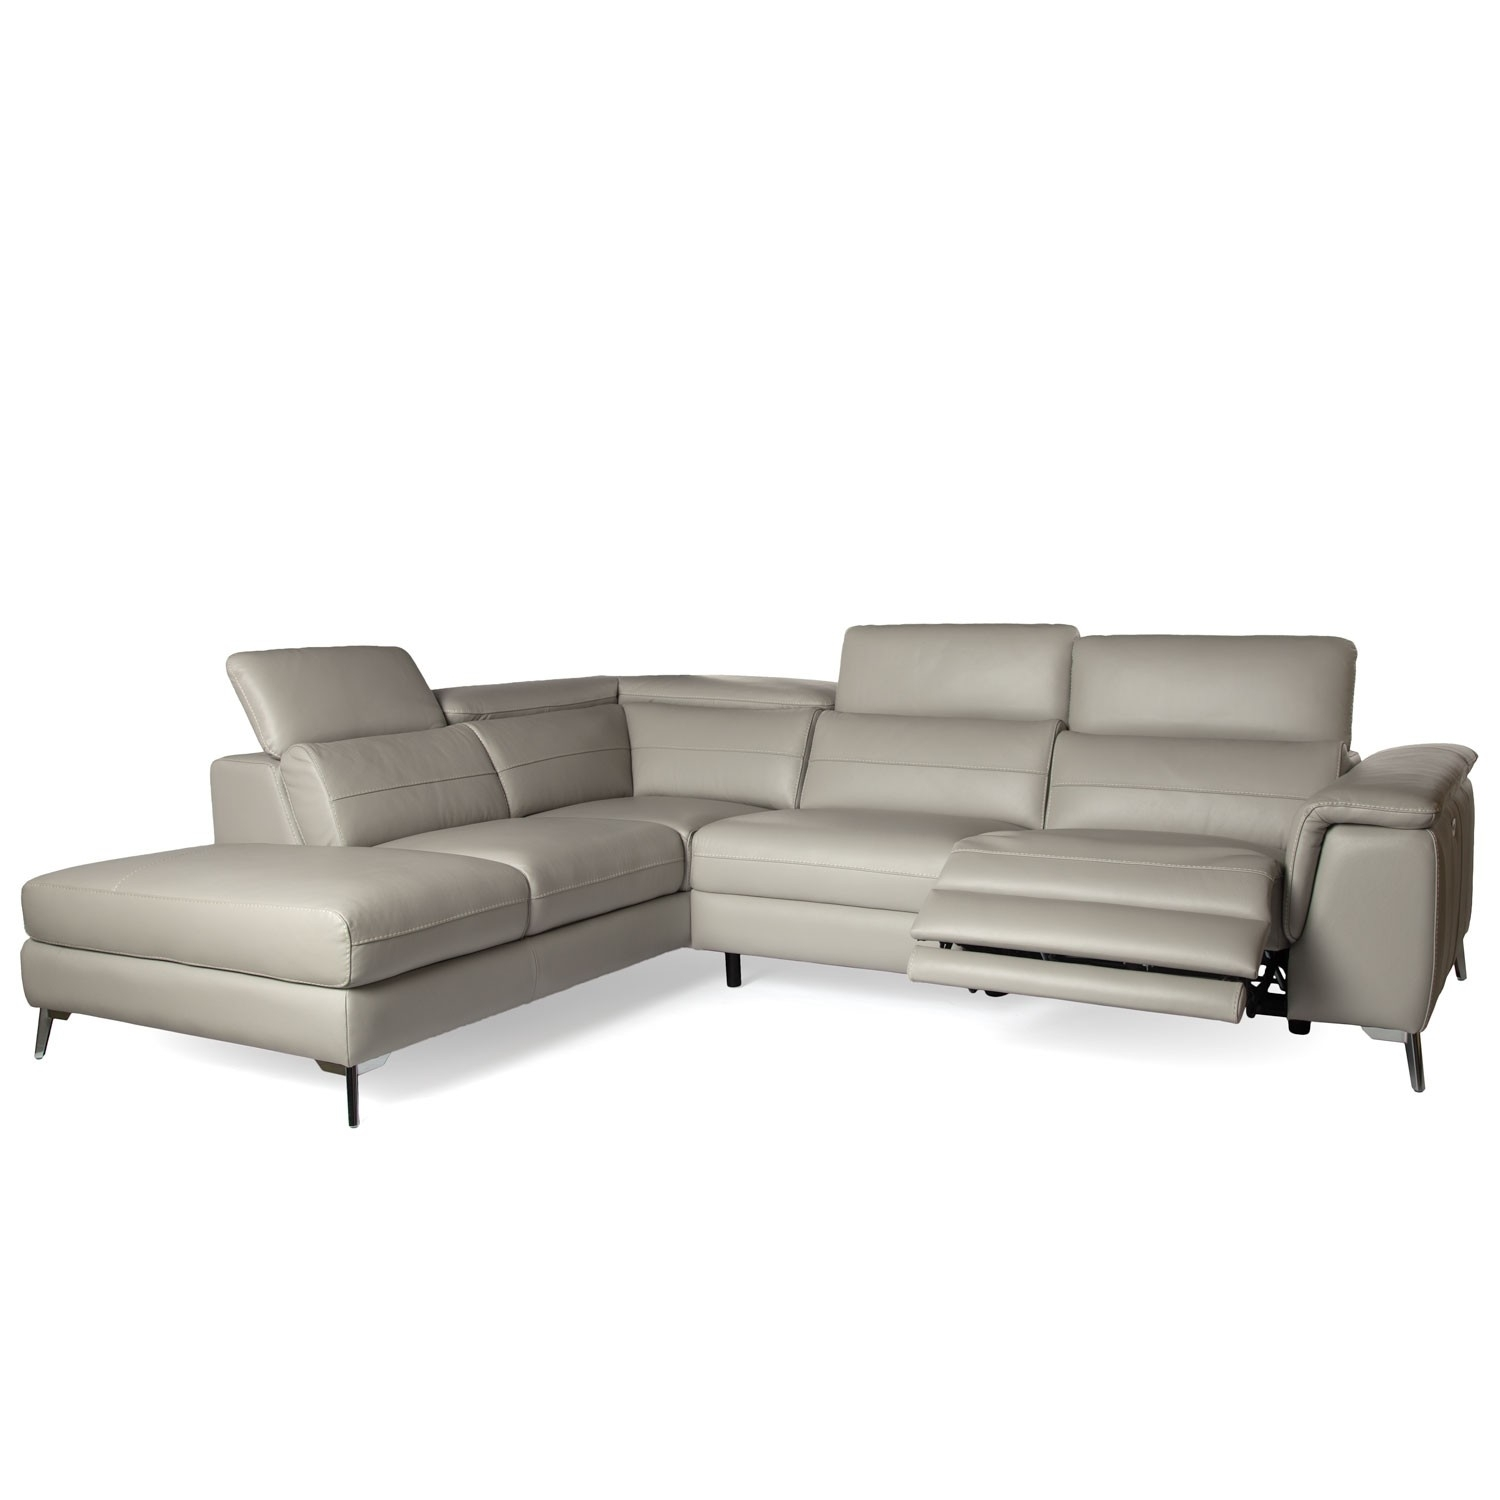 Grey Leather Reclining Sectional Clyde 3 Piece Power W Pwr Hdrst Intended For Clyde Grey Leather 3 Piece Power Reclining Sectionals With Pwr Hdrst & Usb (Image 10 of 25)